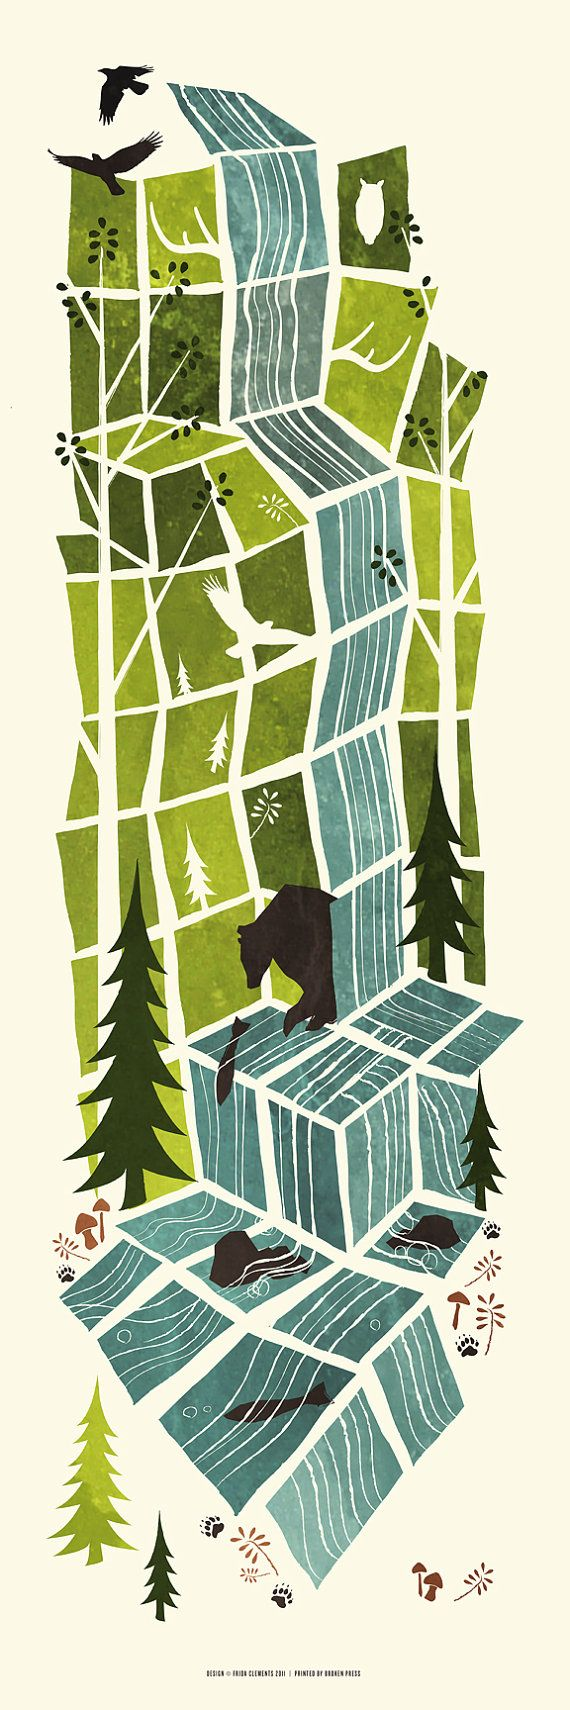 Bear in the Woods - illustration by Frida Clemens. The purpose is